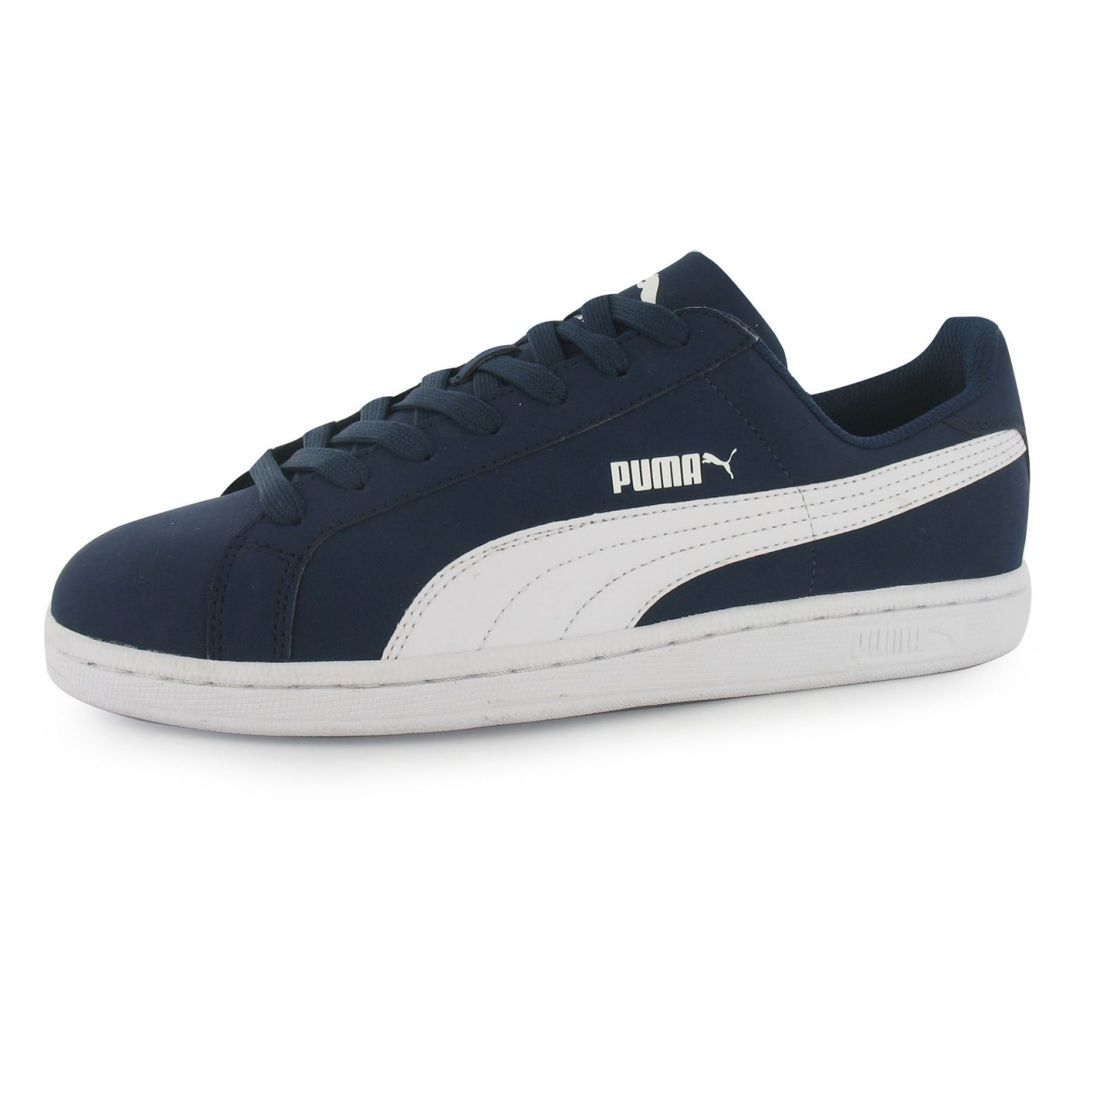 15c4e5c01d5f Puma Mens Smash Nubuck Trainers Sneakers Casual Sport Shoes Lace Up Gripped